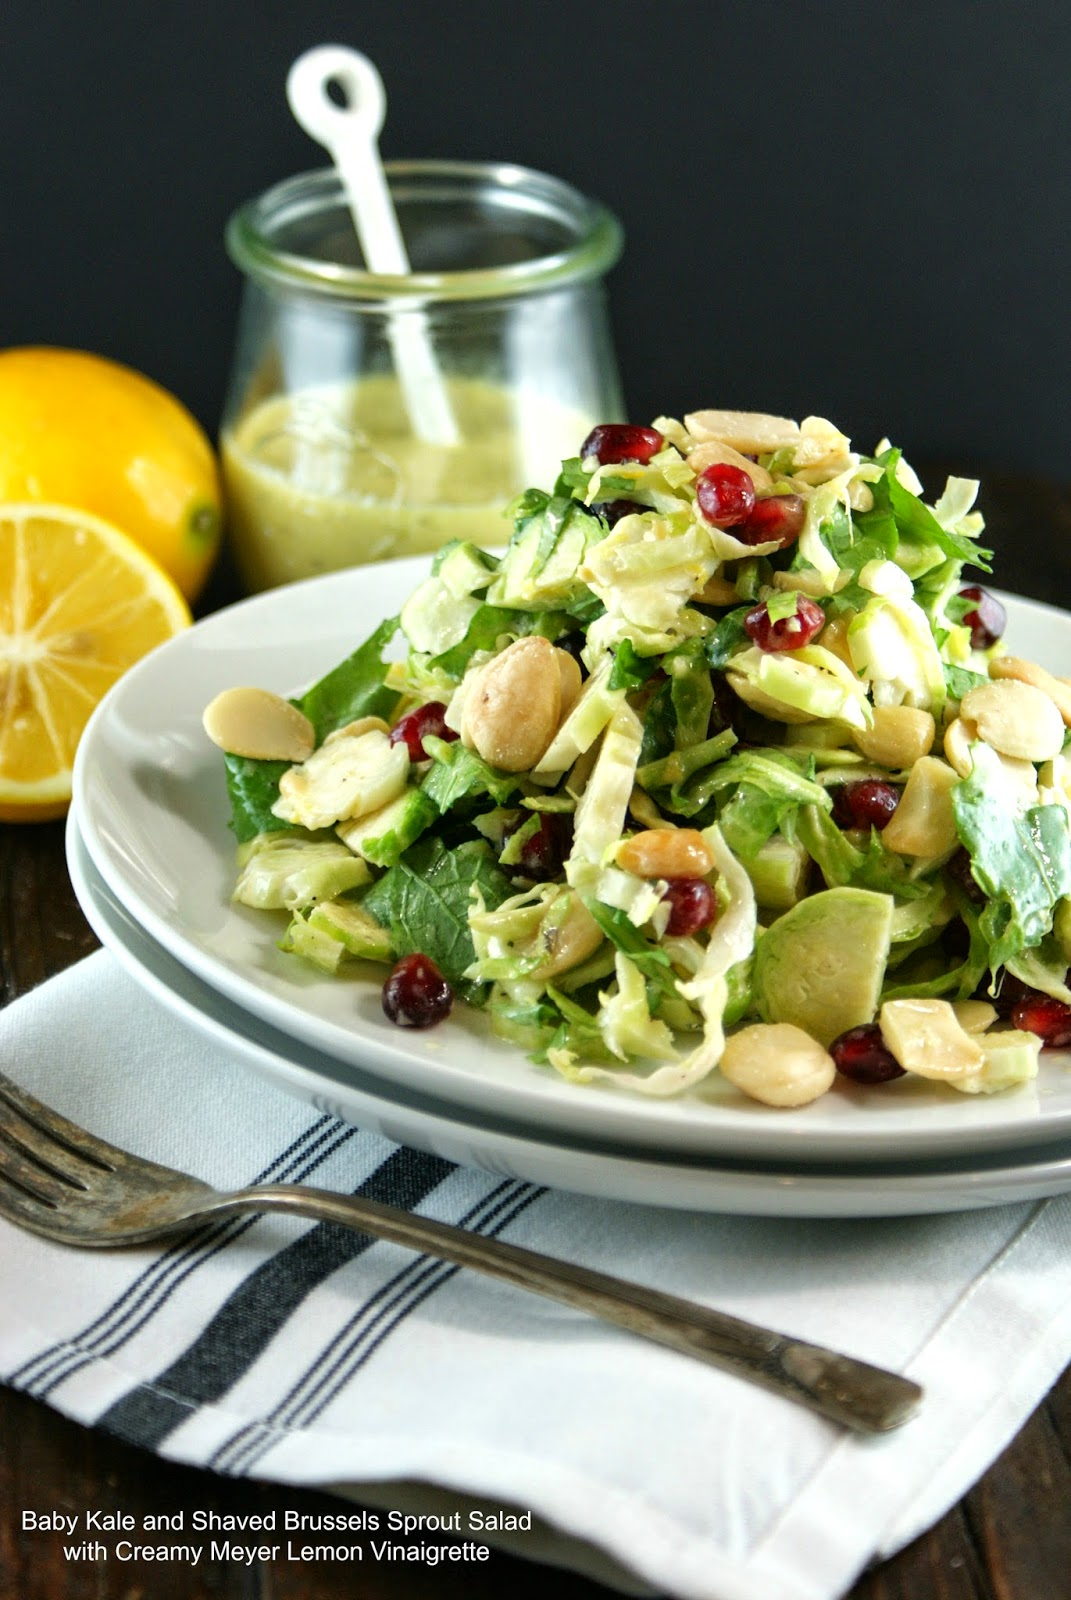 and Shaved Brussels Sprout Salad with Creamy Meyer Lemon Vinaigrette ...